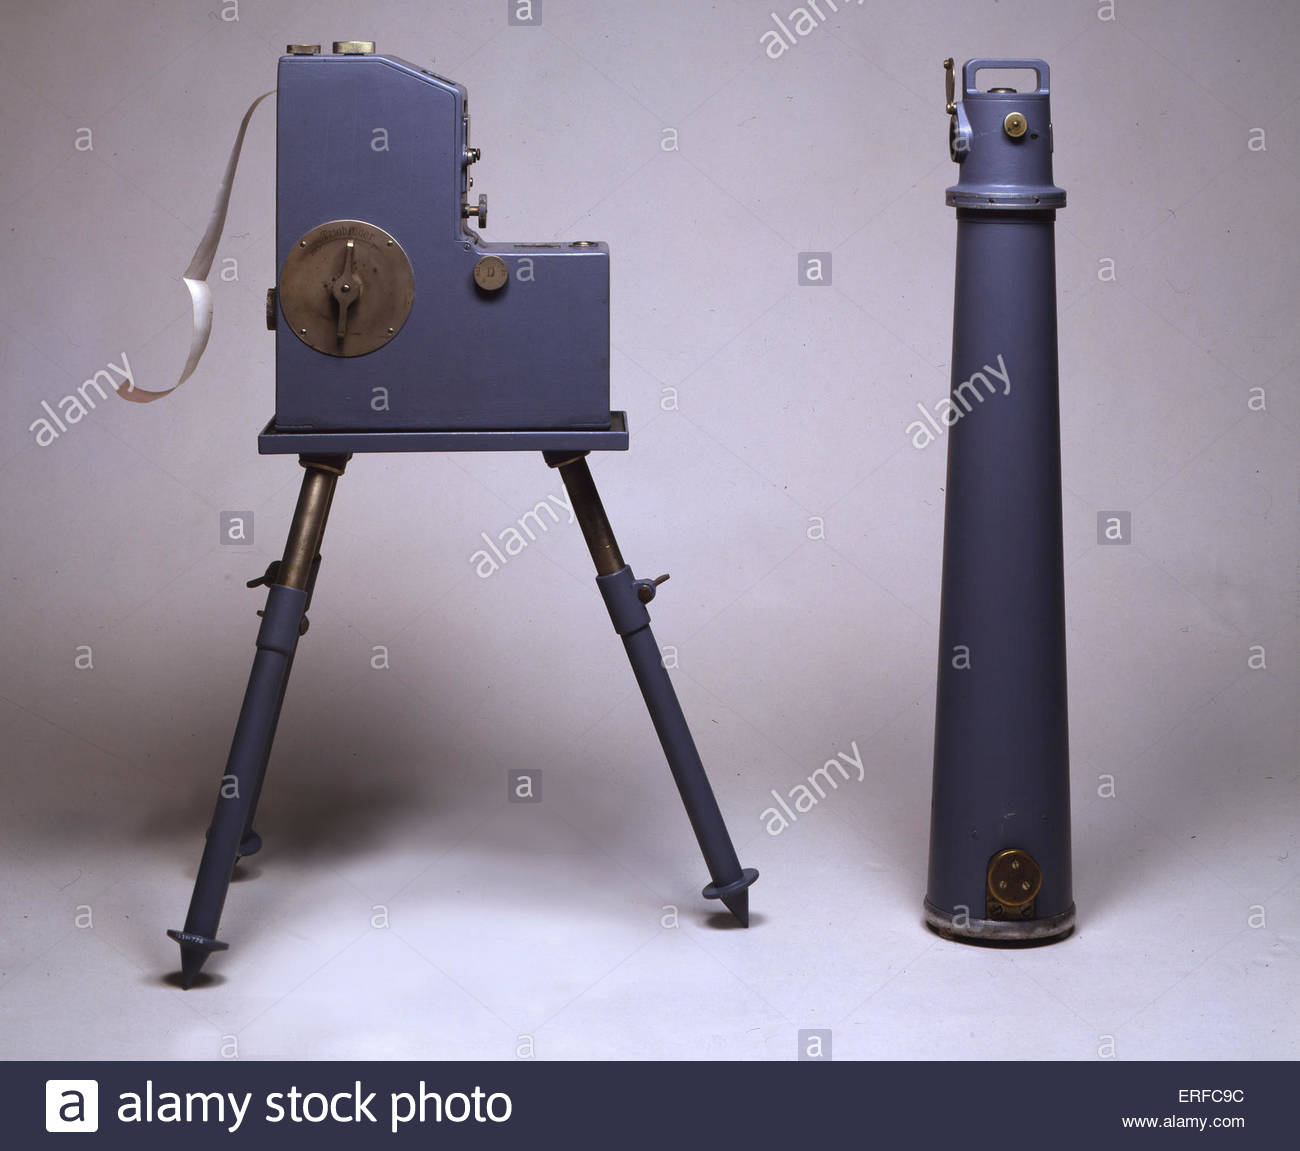 Mintrop seismograph, 1917. Courtesy of the Science Museum, London. - Stock Image